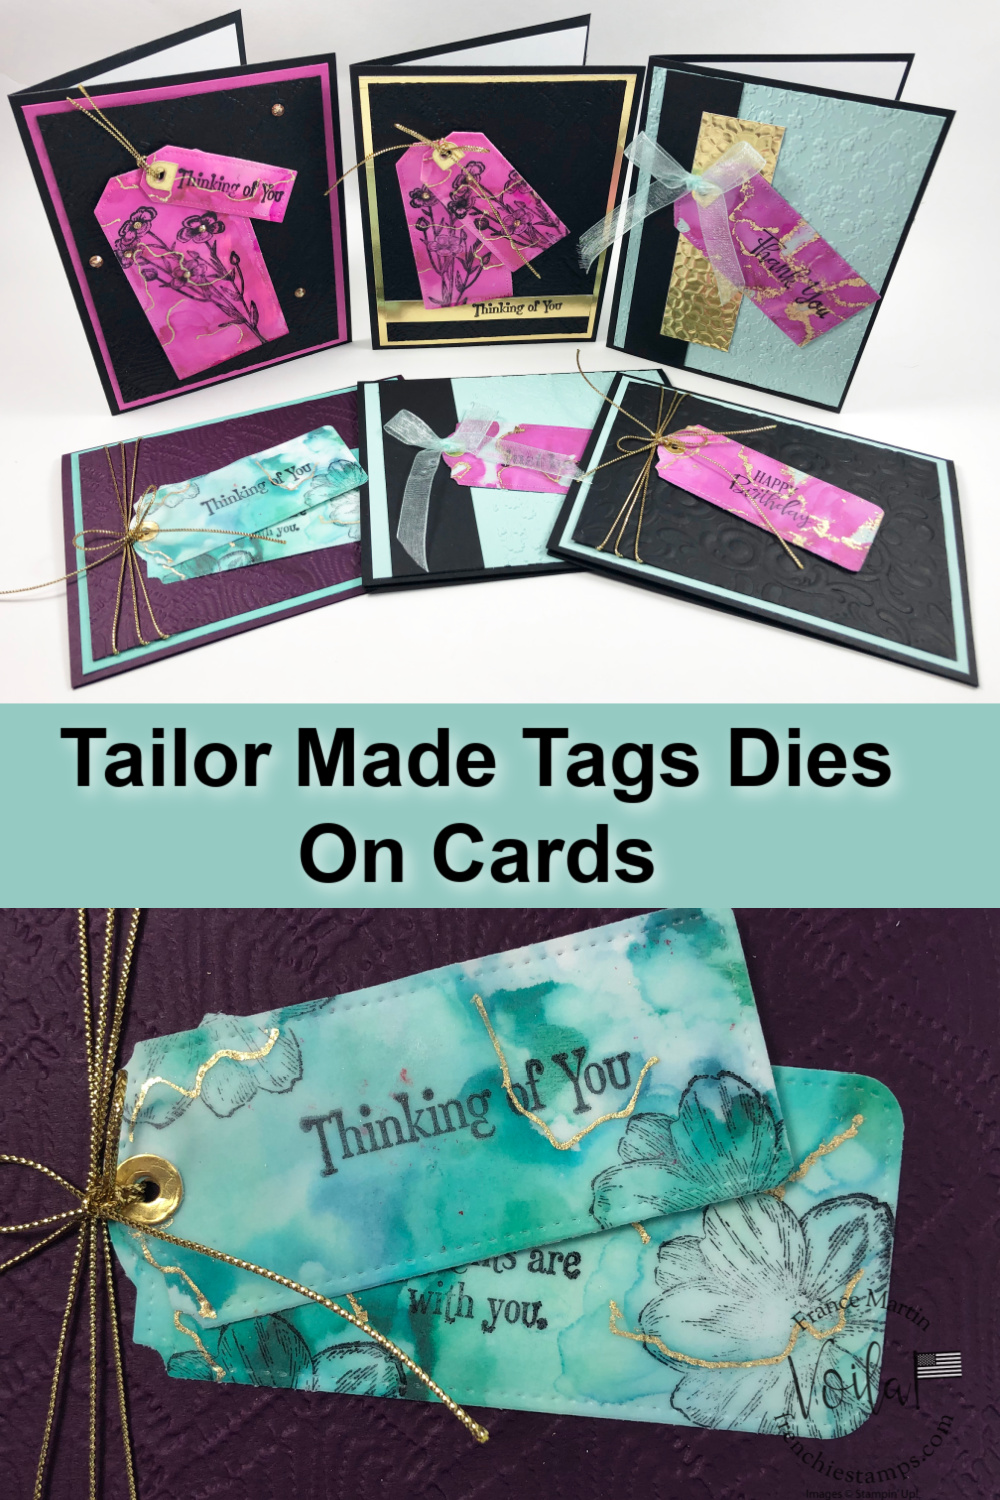 Tailor Made Tags Dies On Cards